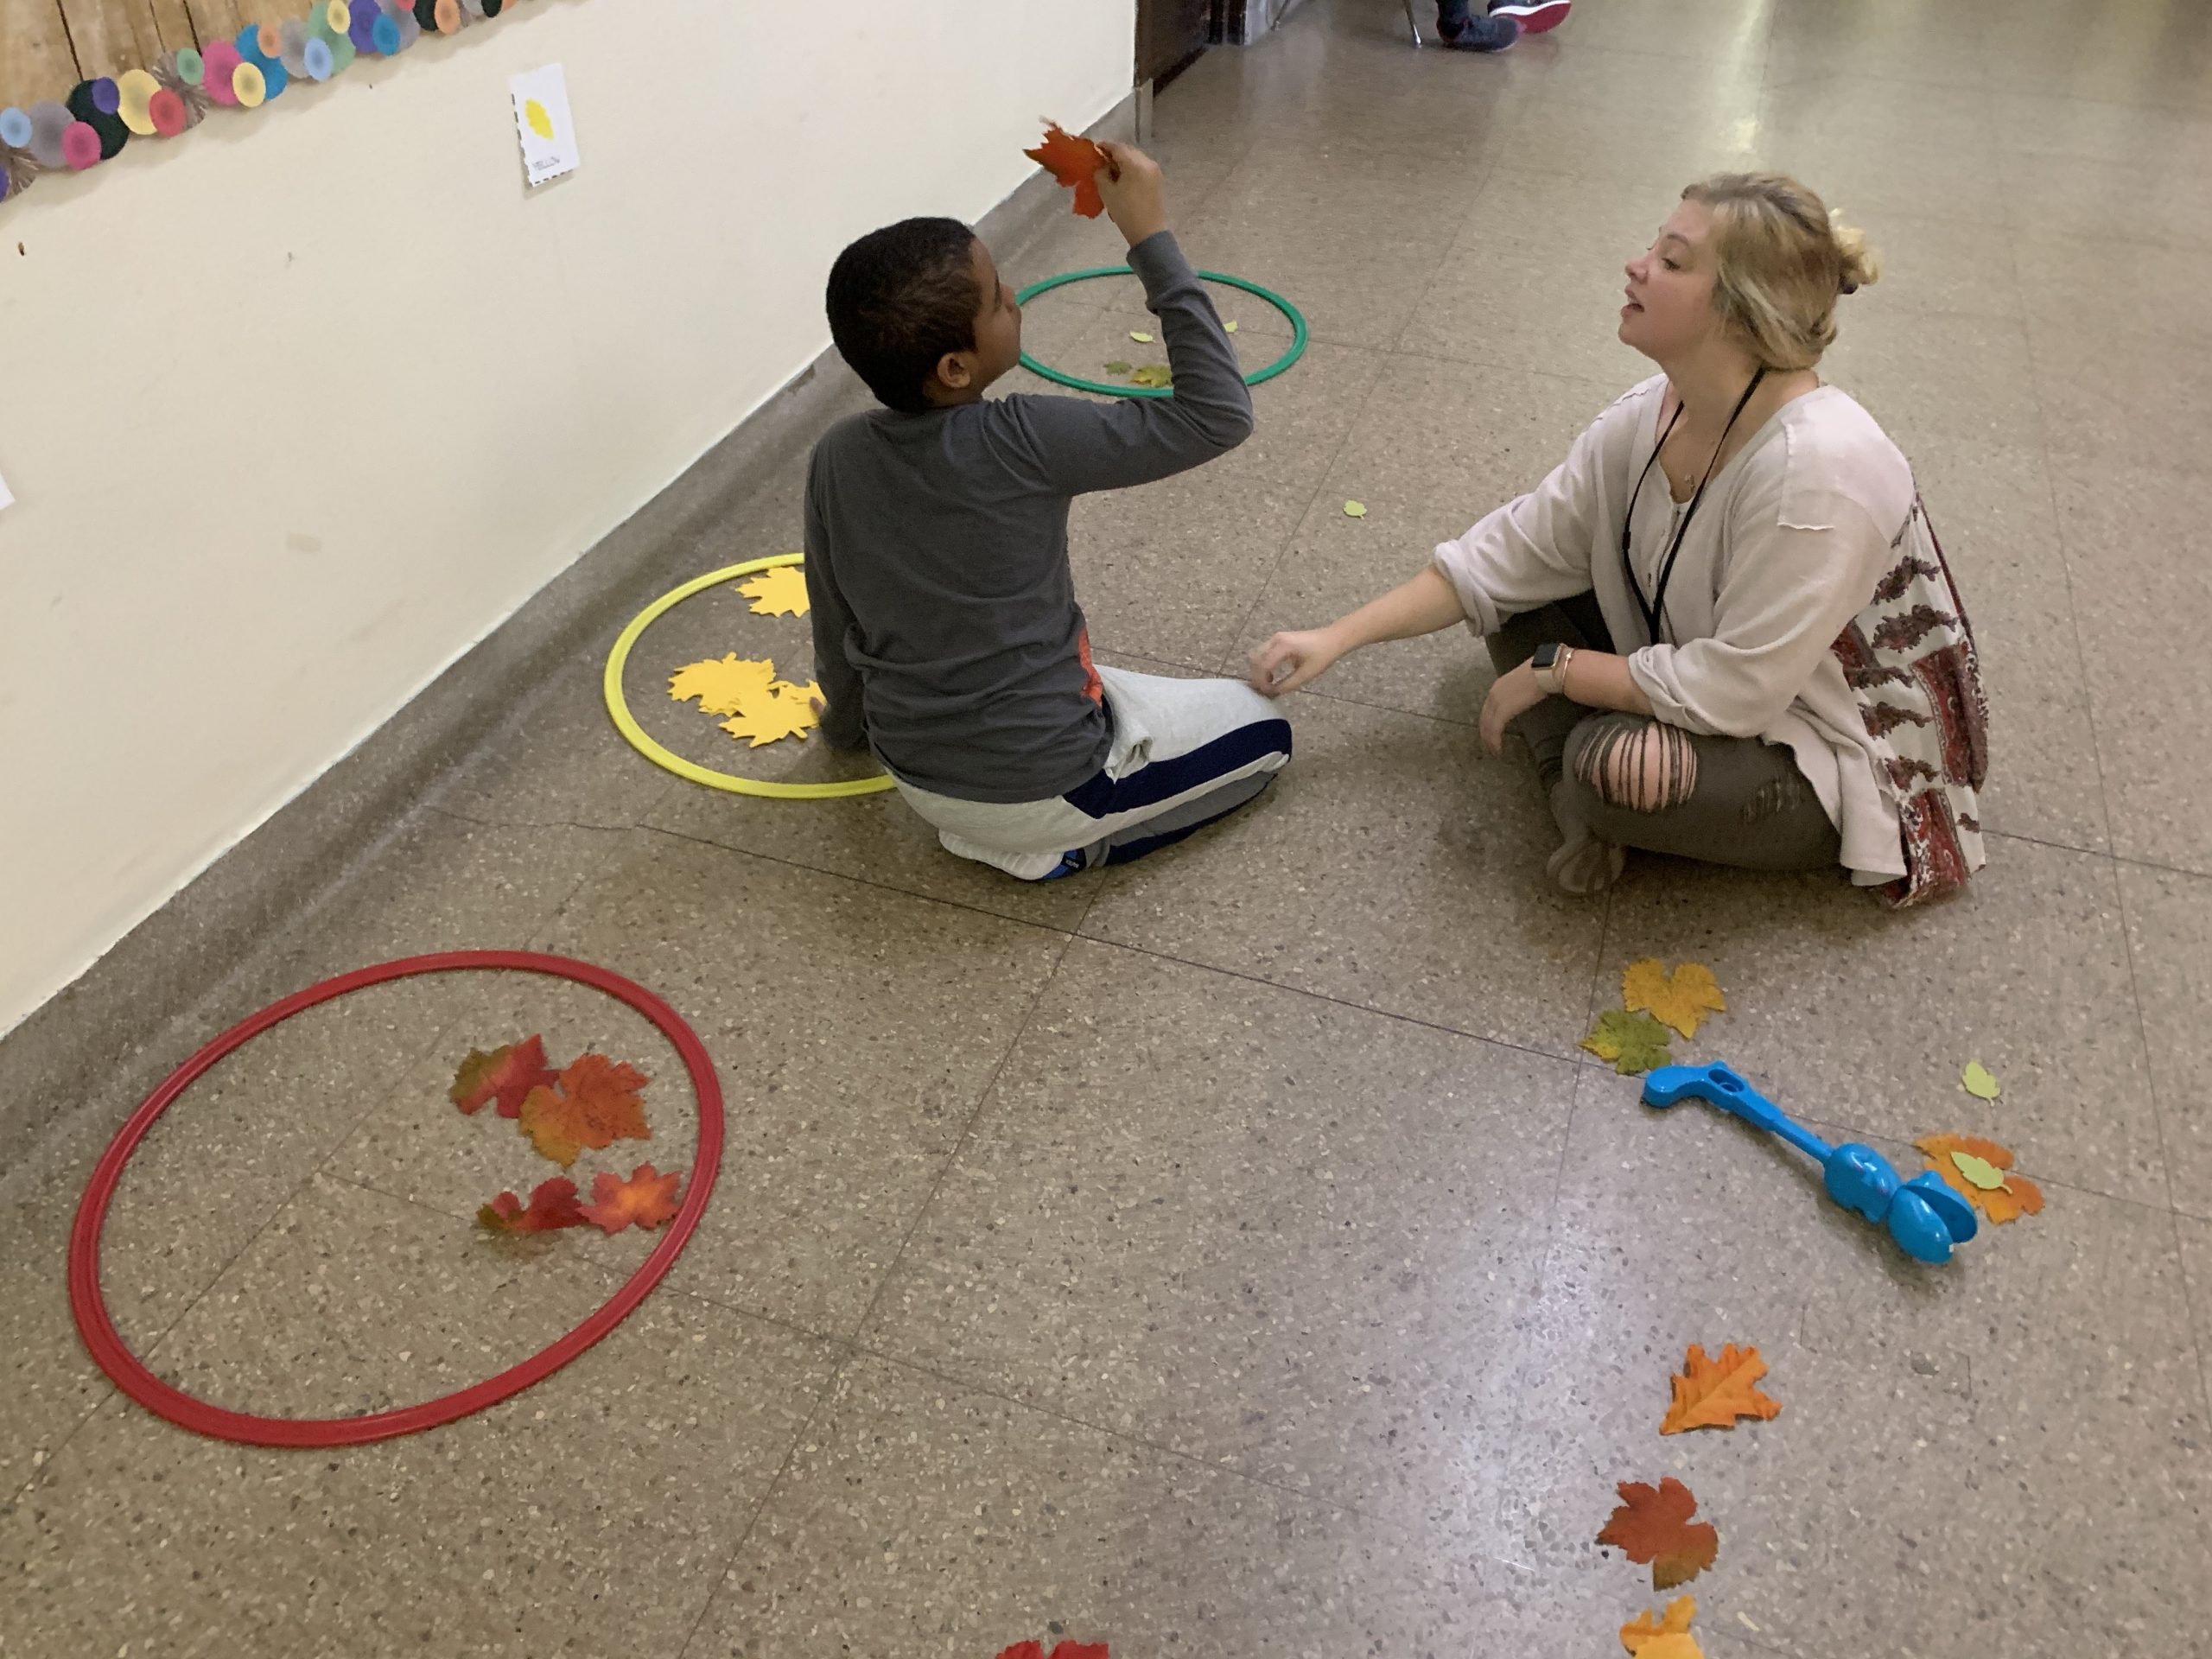 In a hallway, a middle school male student is kneeling on the floor by three circles of different colors (red, yellow, green), leaves and light blue hand grabber while the occupational therapist sits next to him. They appear to be doing a sorting activity. The student holds an orange leaf and is looking at it while the OT is tapping the student to gain his attention.